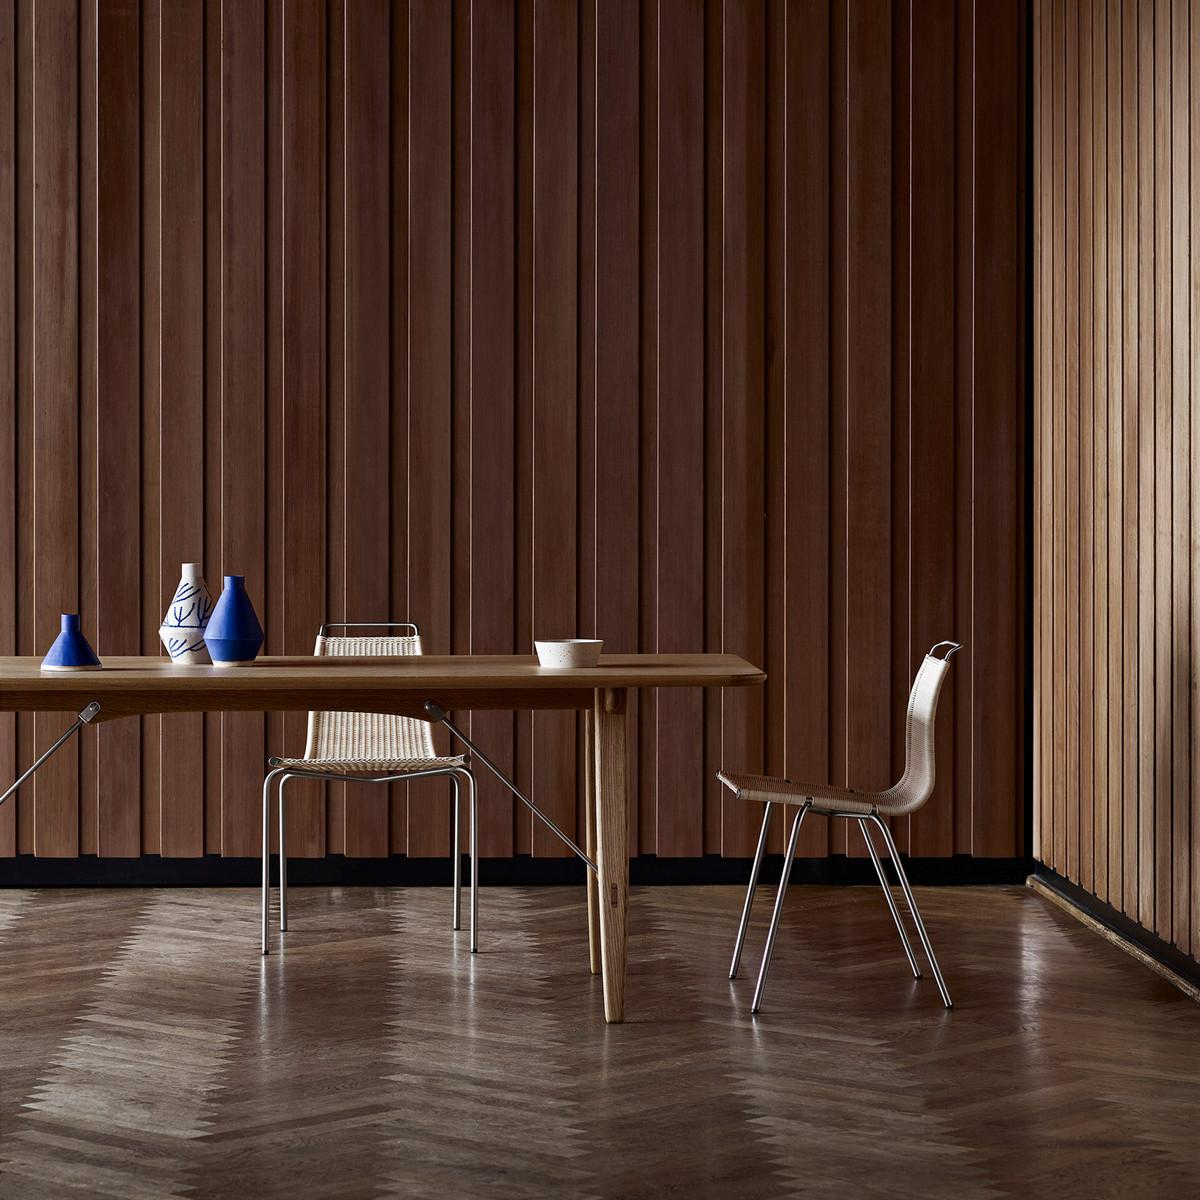 second-birth-of-scandinavian-classic04_Hunting_Table